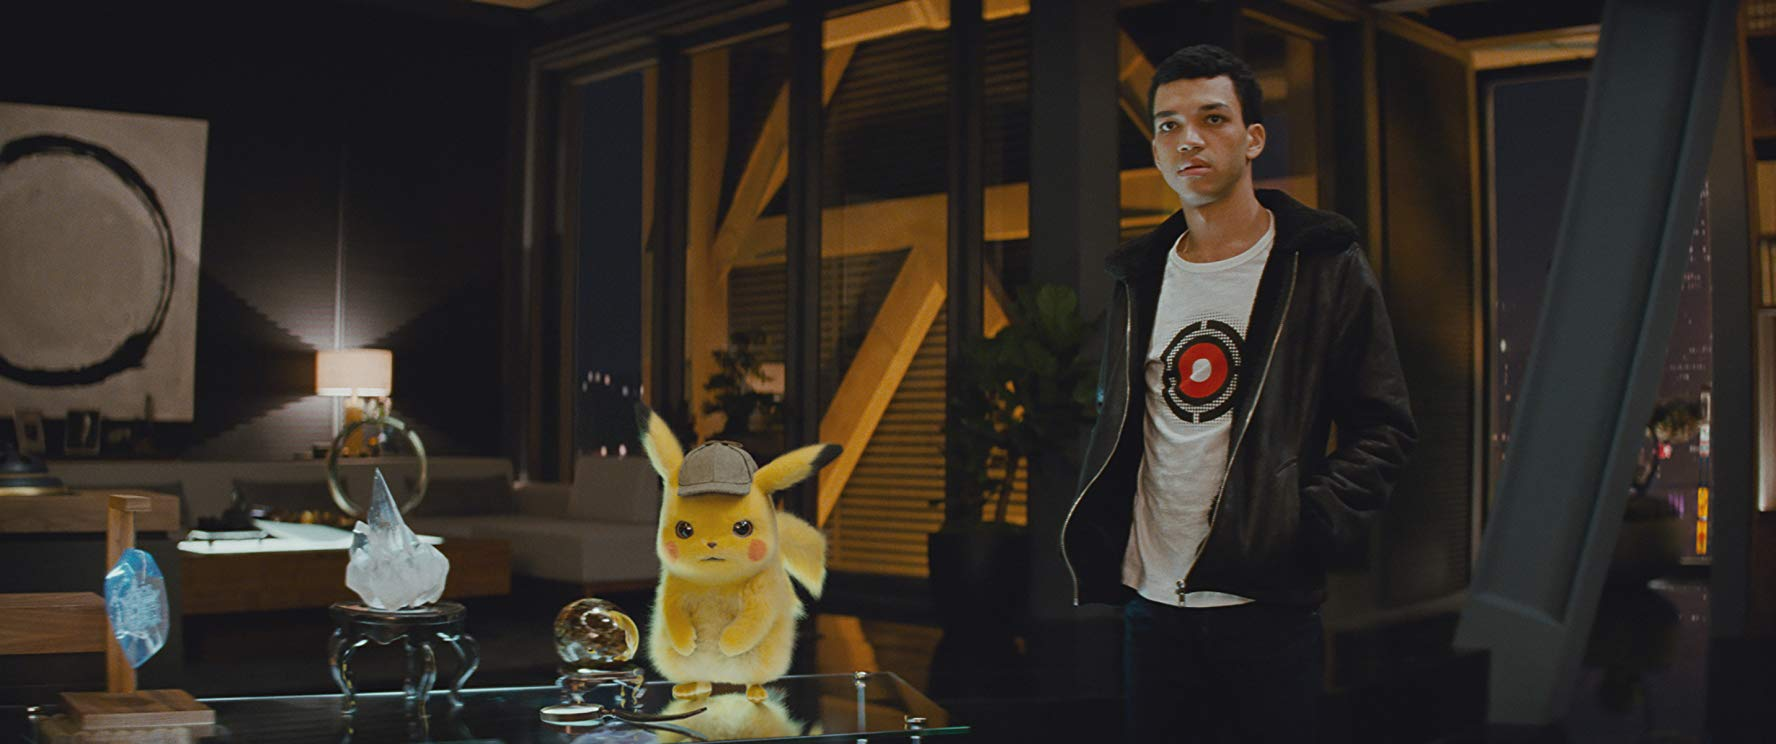 Tim and Pikachu get to the bottom of their bland missio— OMG HE'S SO CUTE